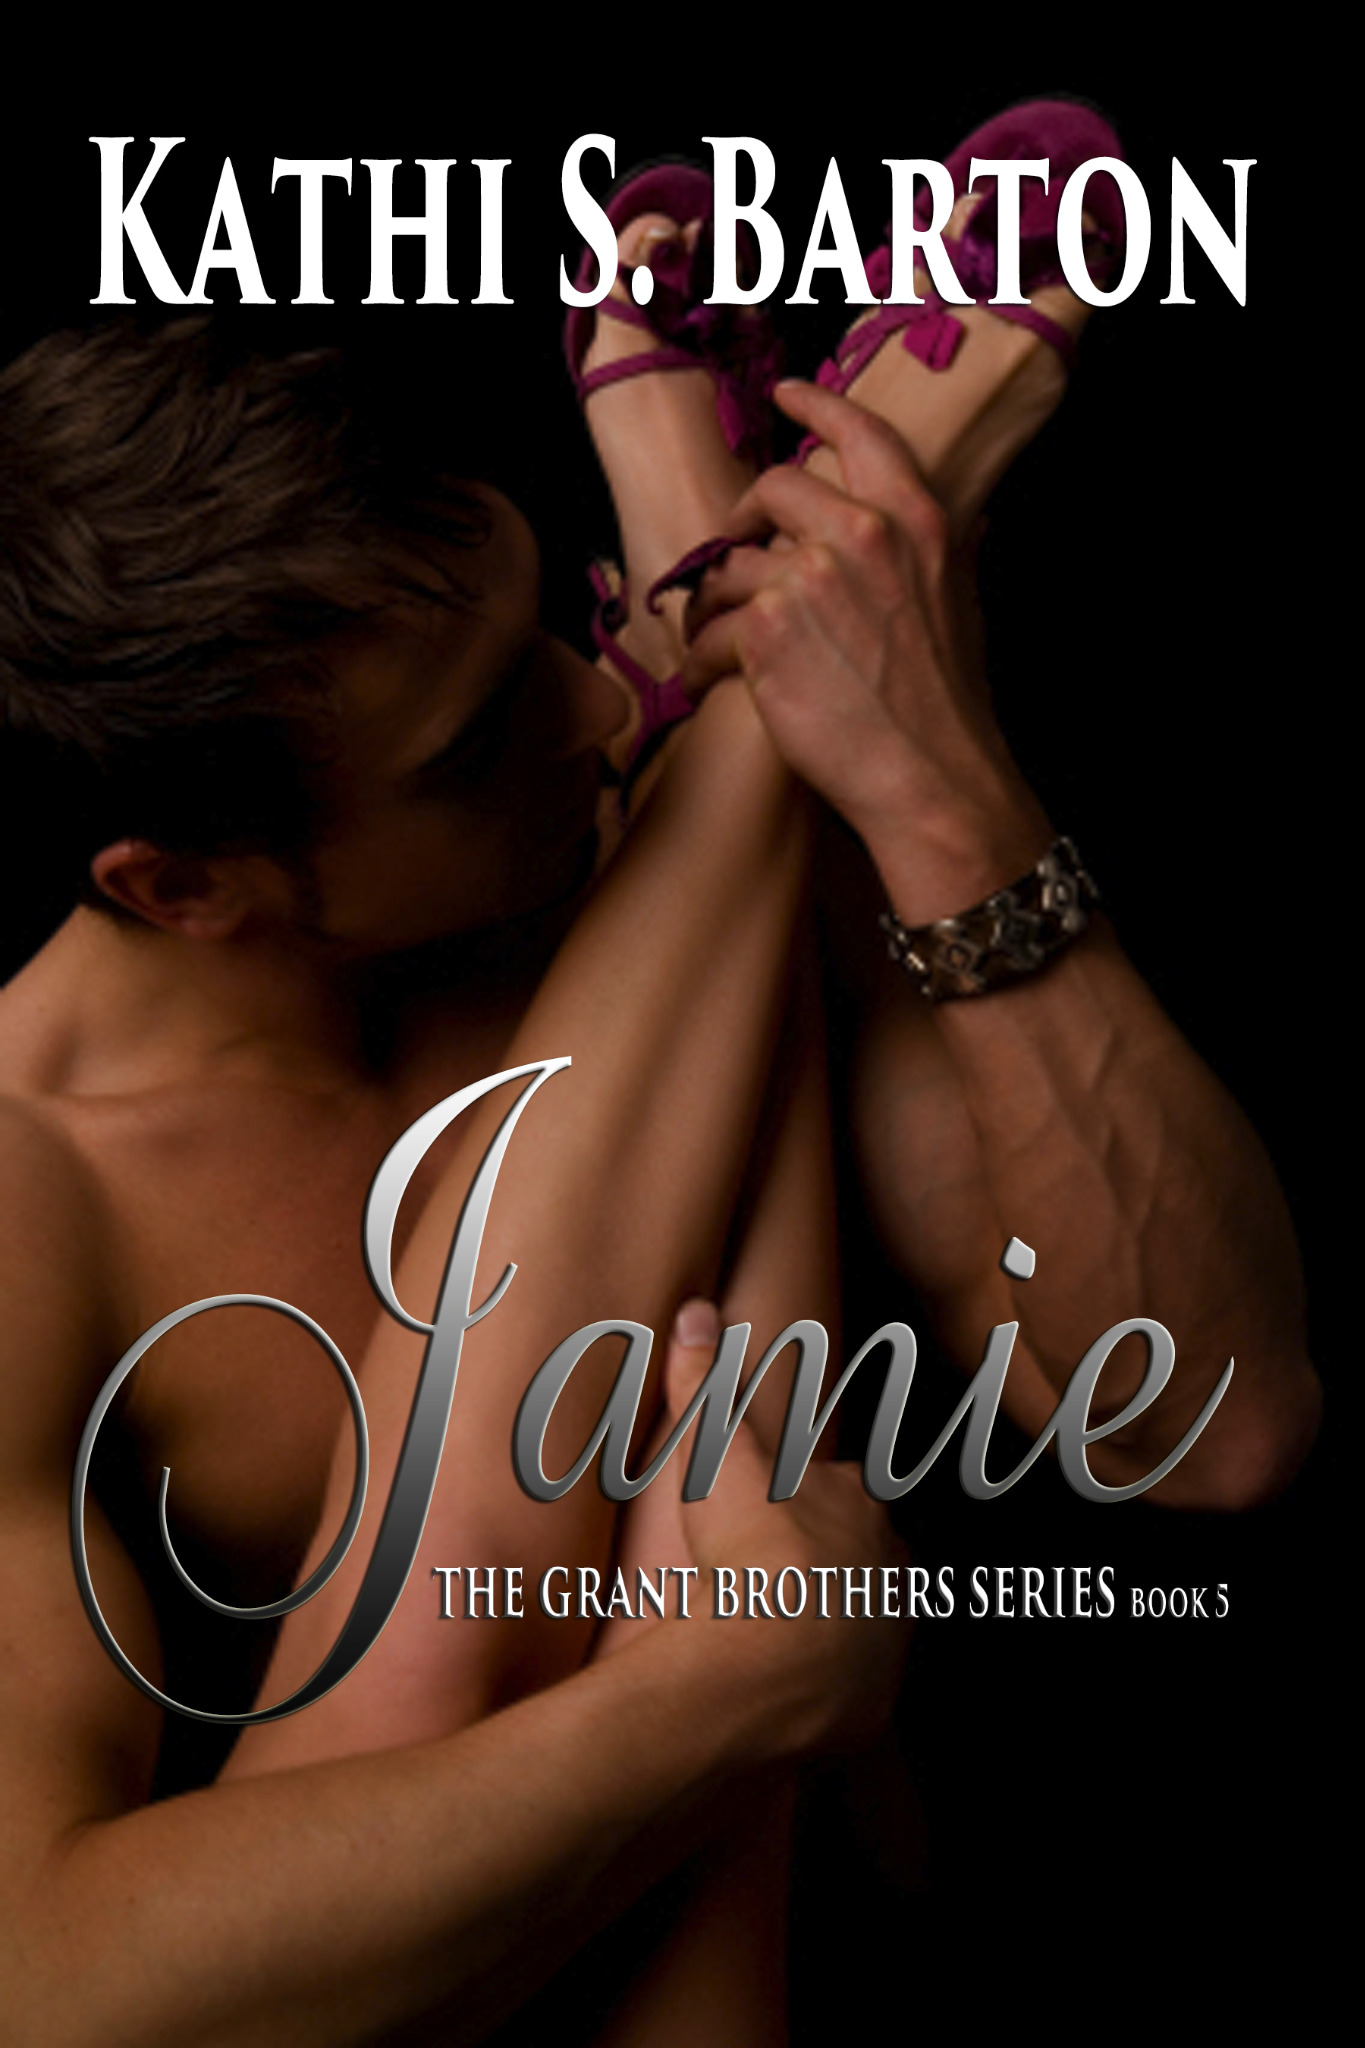 Jamie - The Grant Brothers Series Book 5